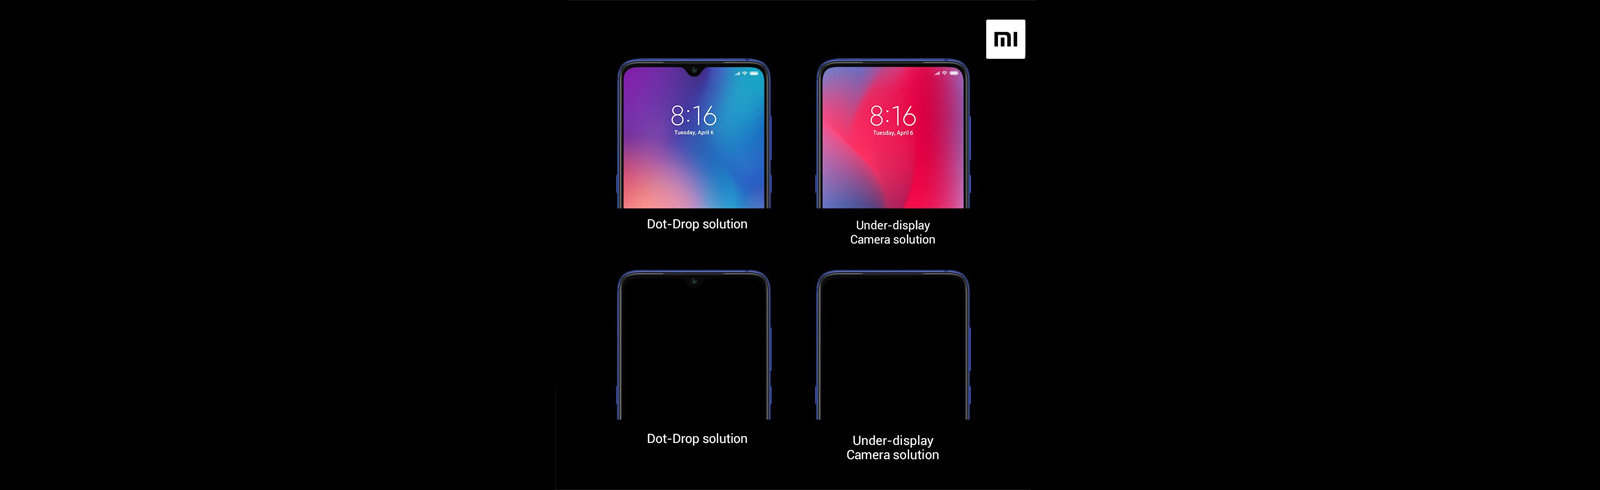 Xiaomi's Senior VP gives more insight into Xiaomi's under-display camera solution